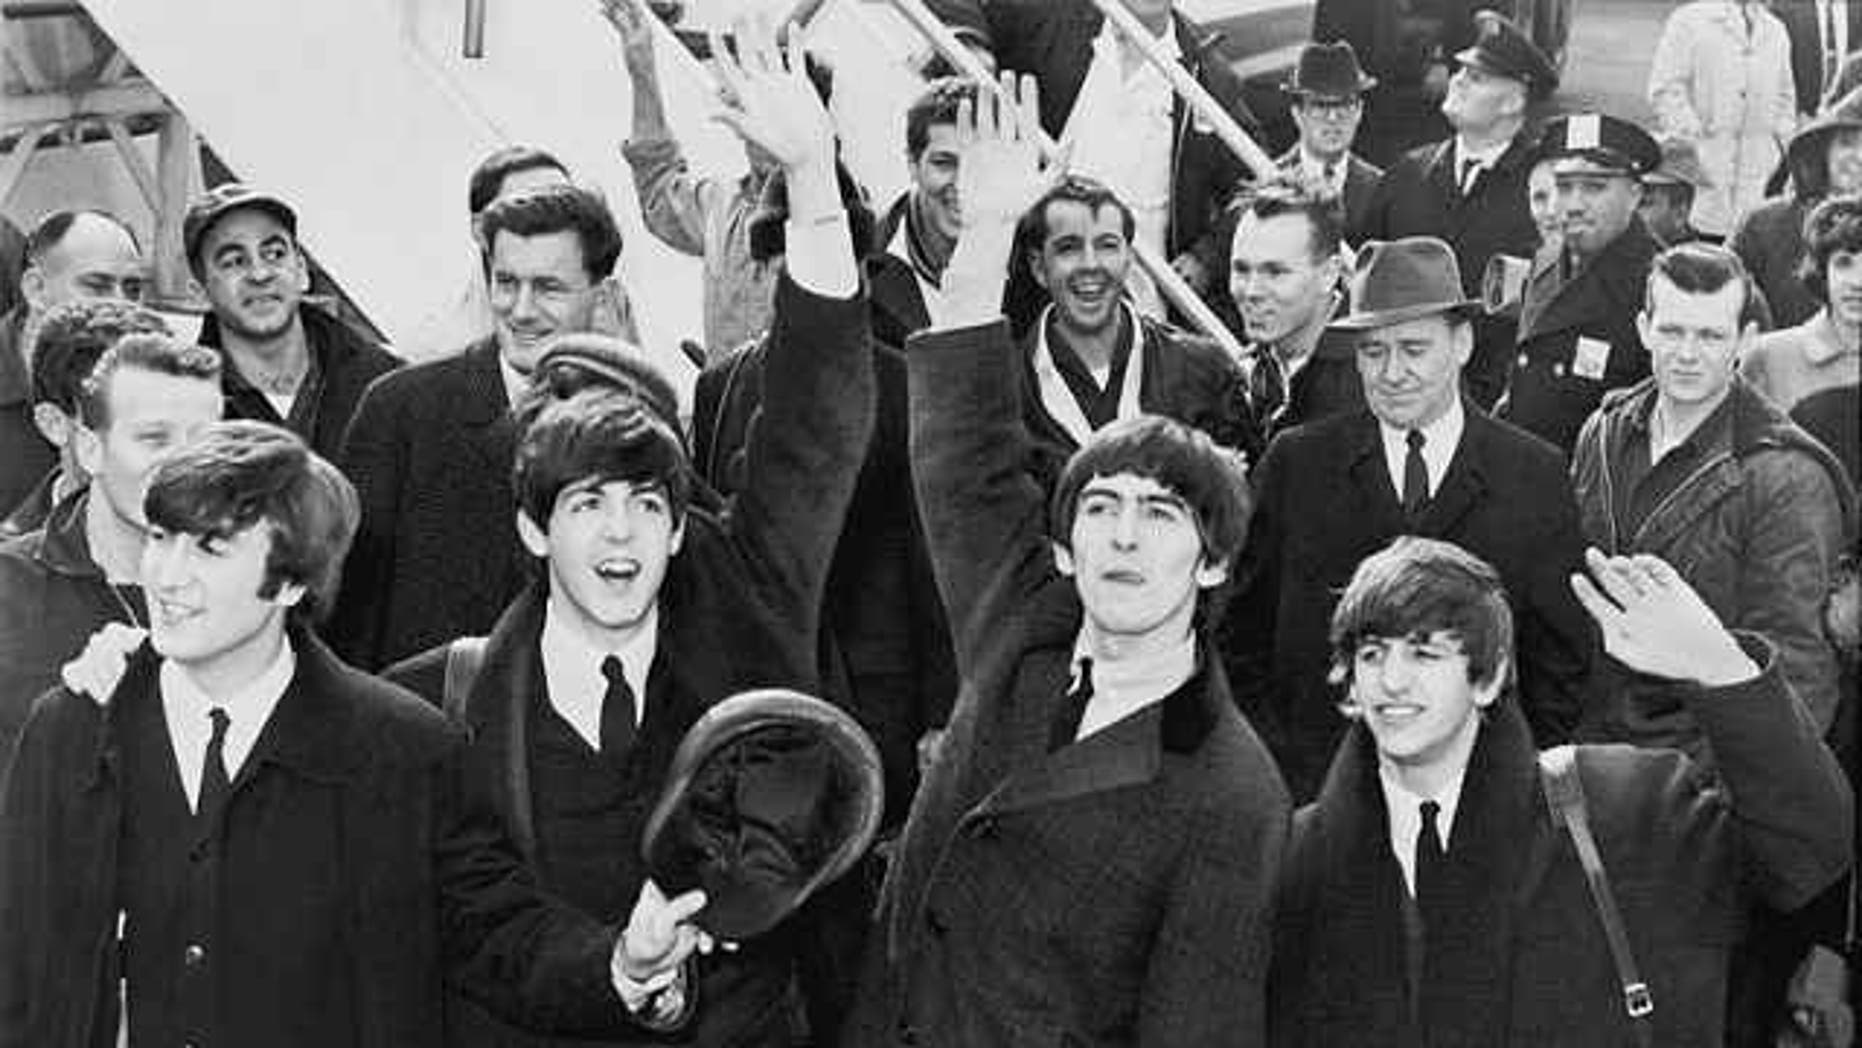 Peter Jackson Directing New Beatles Documentary